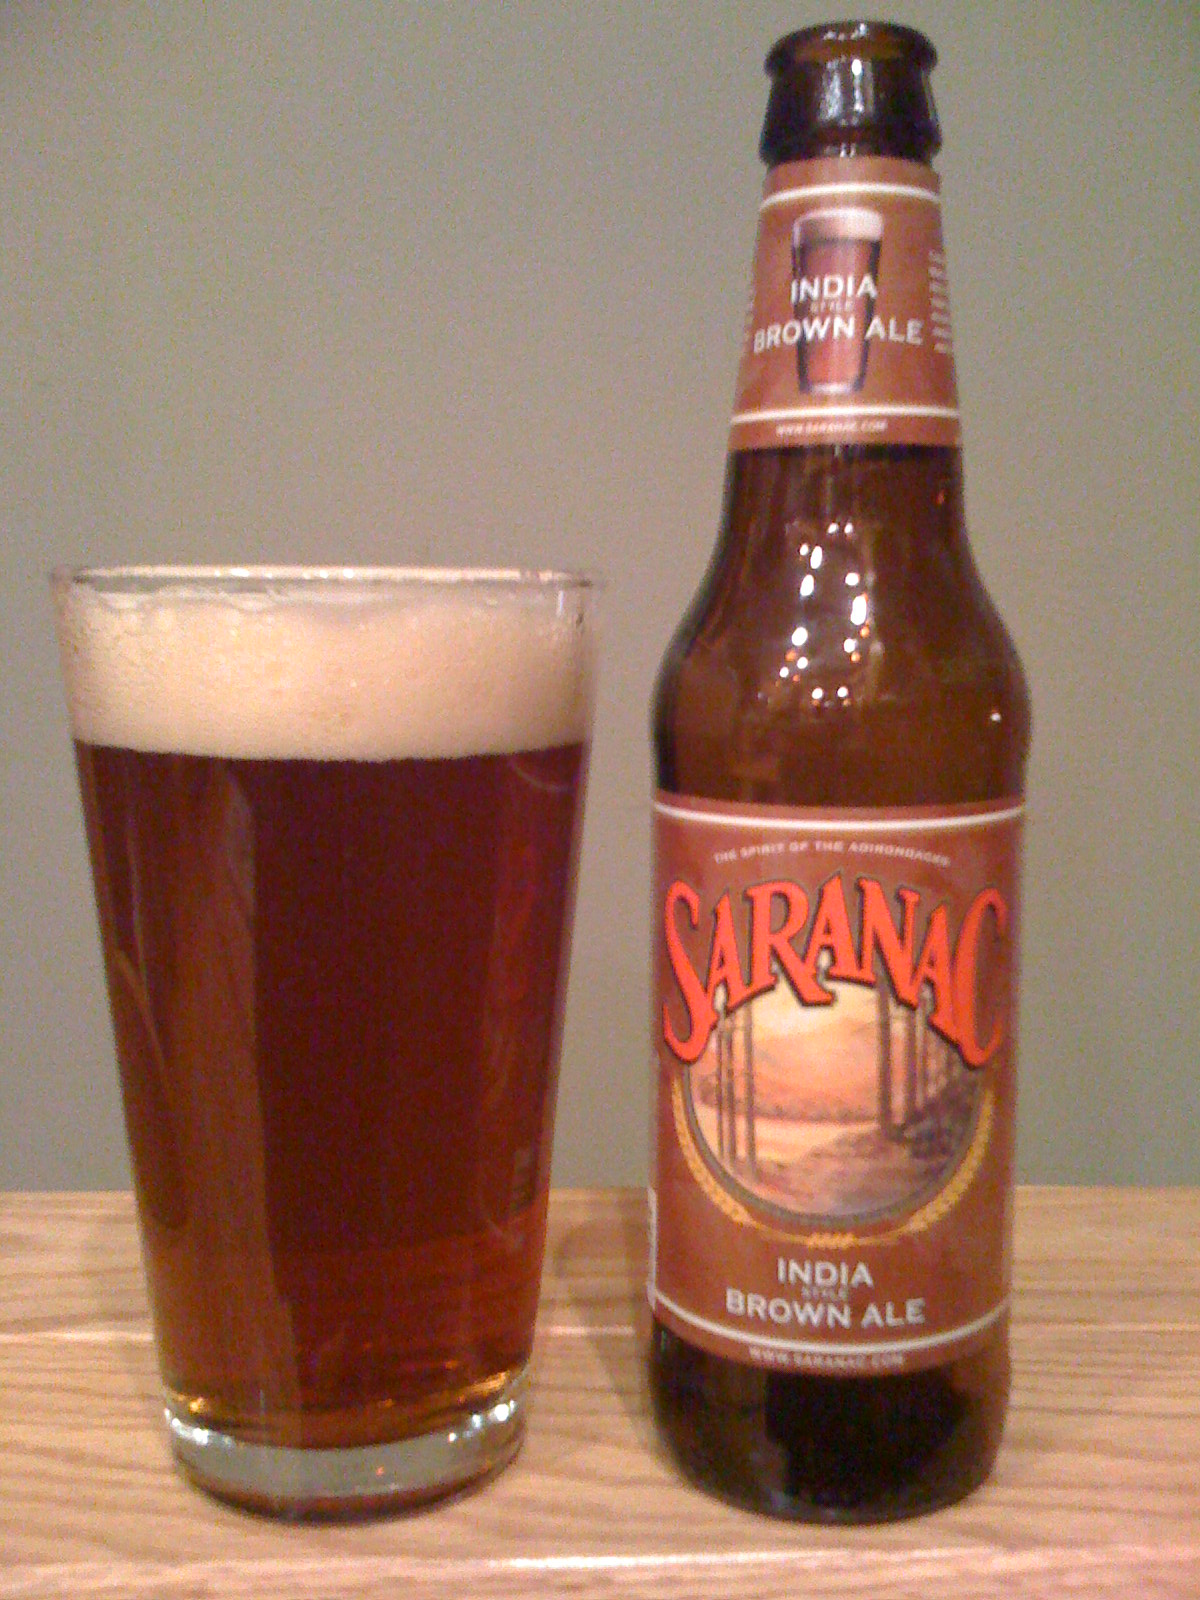 Saranac India Brown Ale